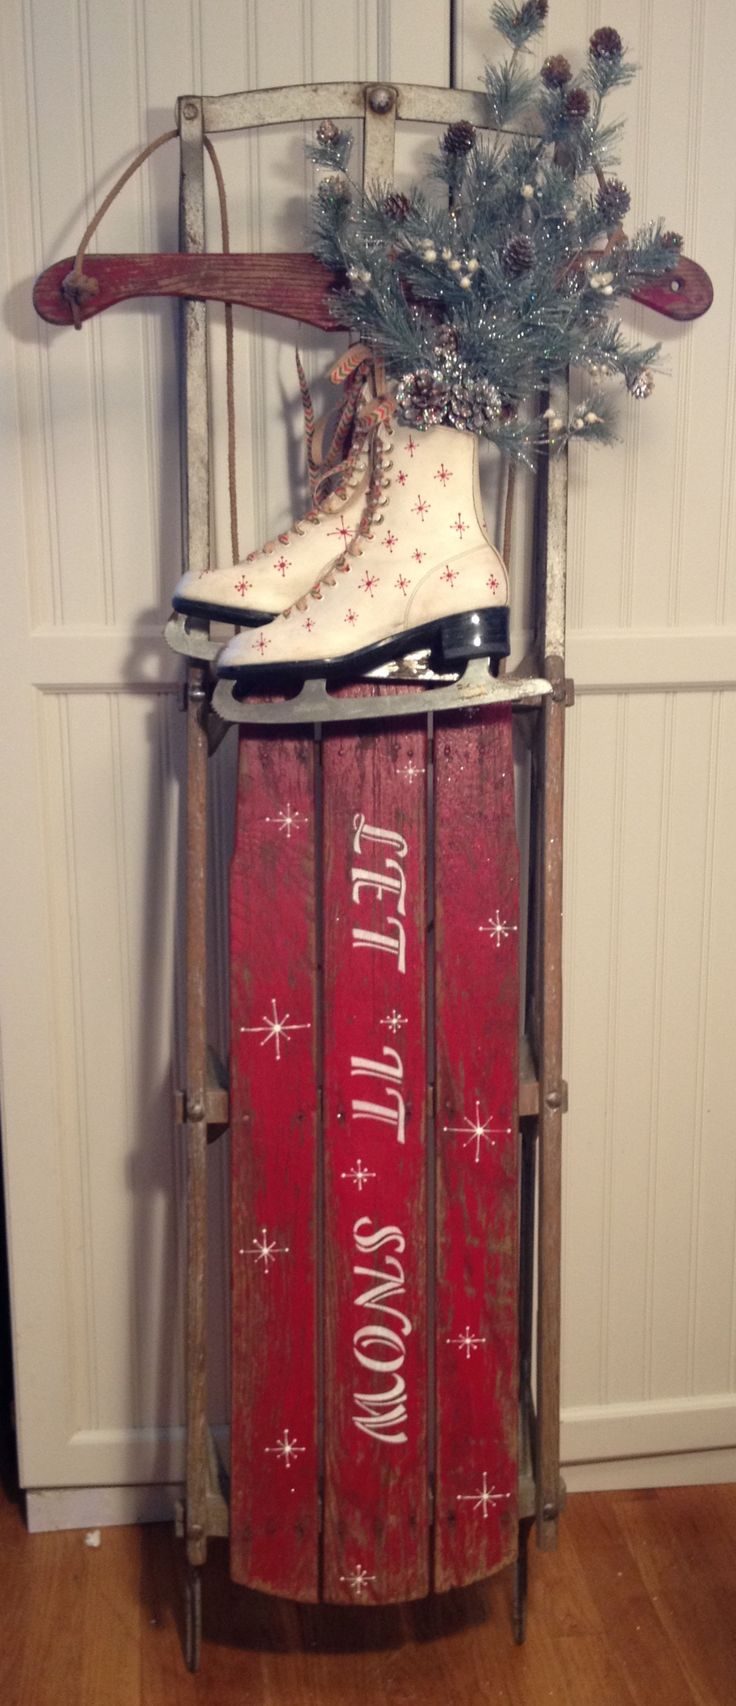 251 best images about painted sleds on pinterest for Antique sled decoration